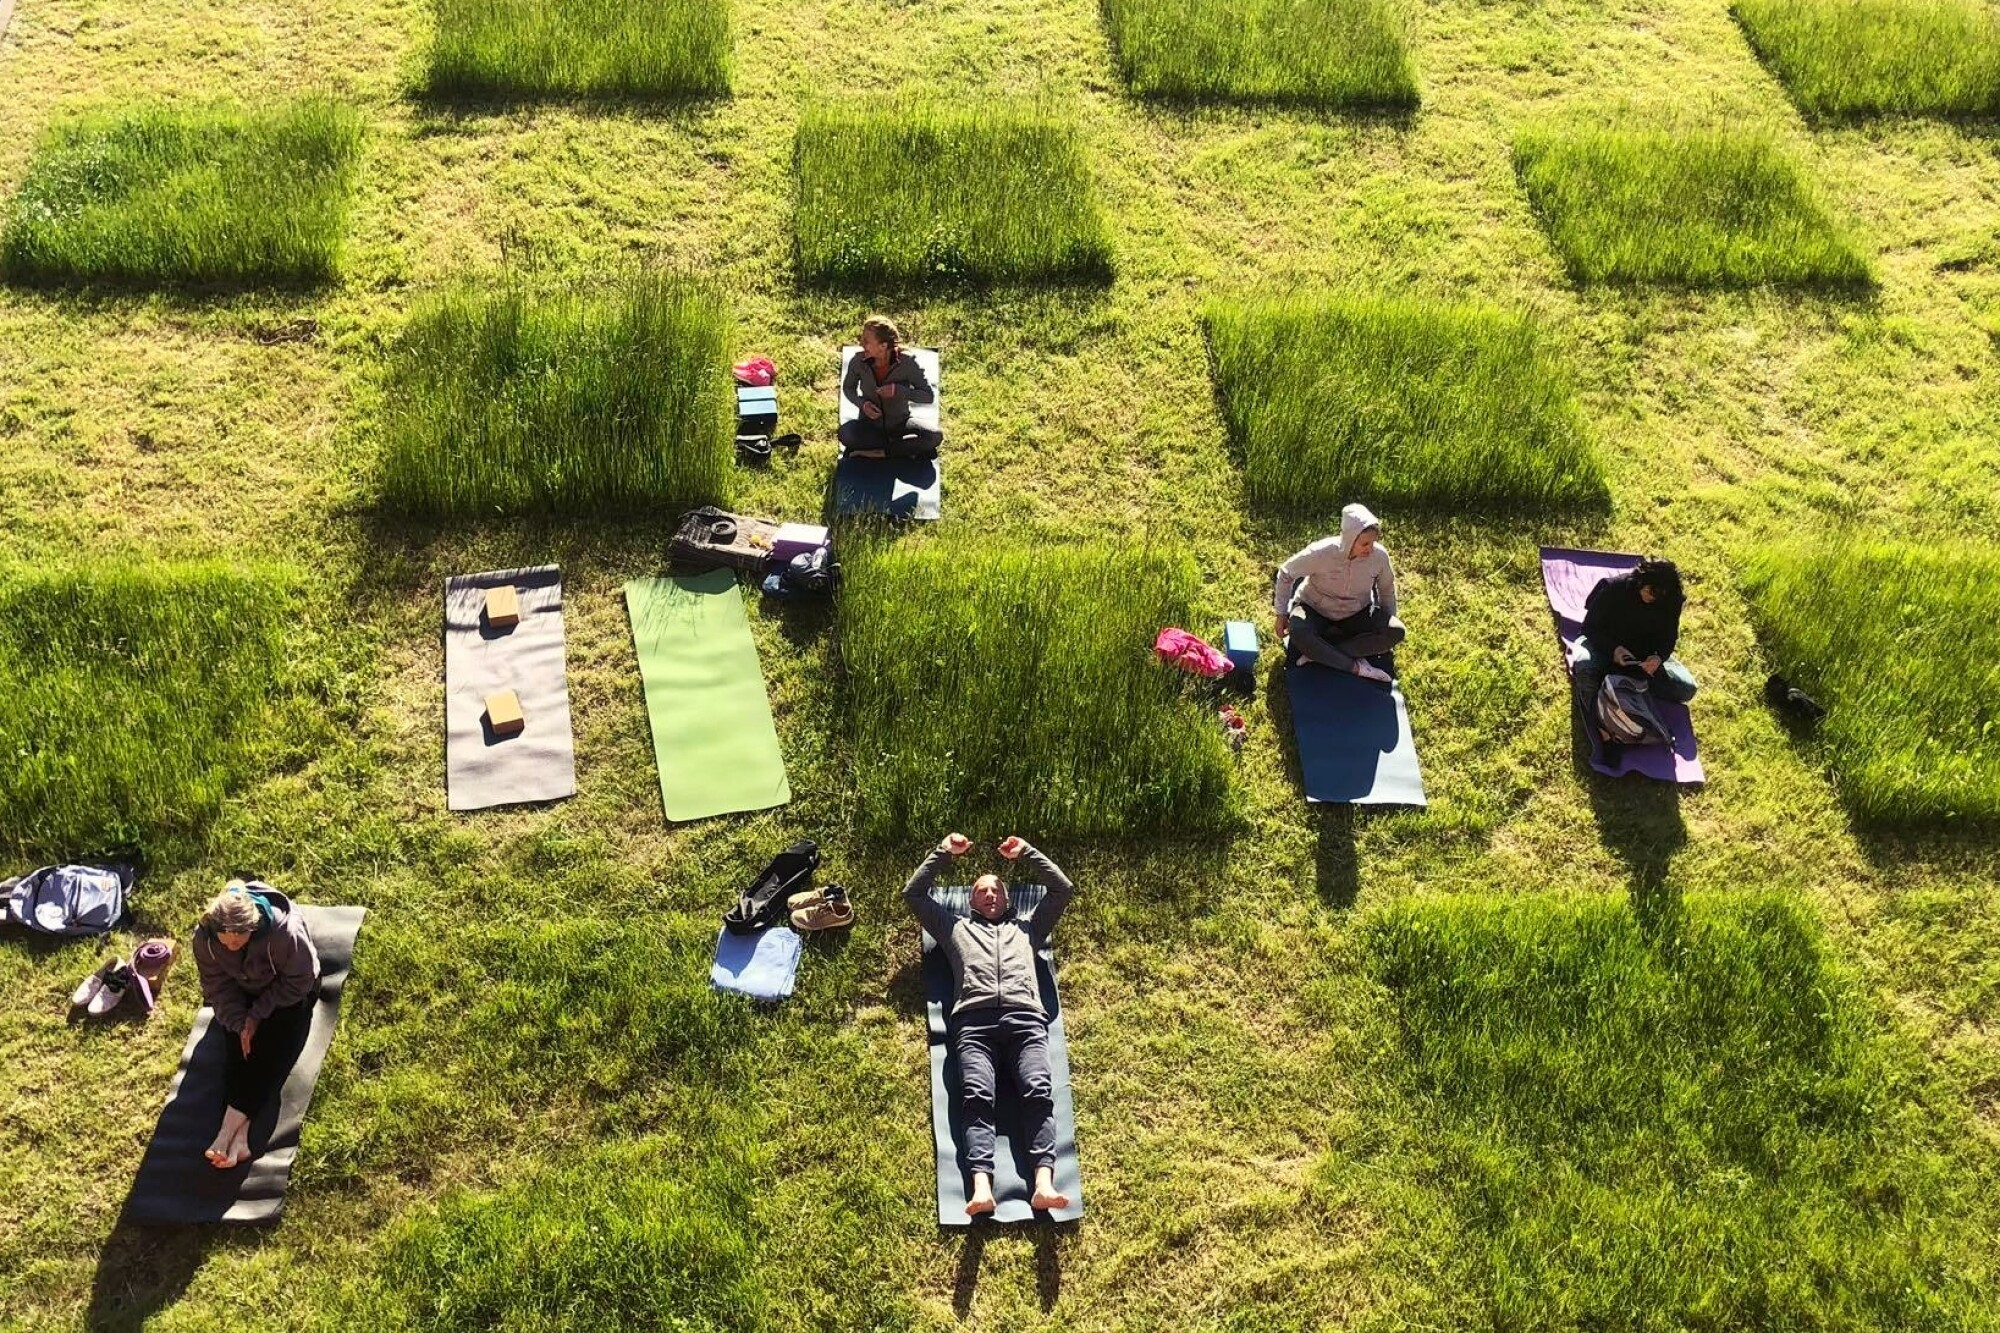 In Elblag, Poland, grass mowed in a checkboard pattern delineated social distancing for those seeking an outdoor reprieve.